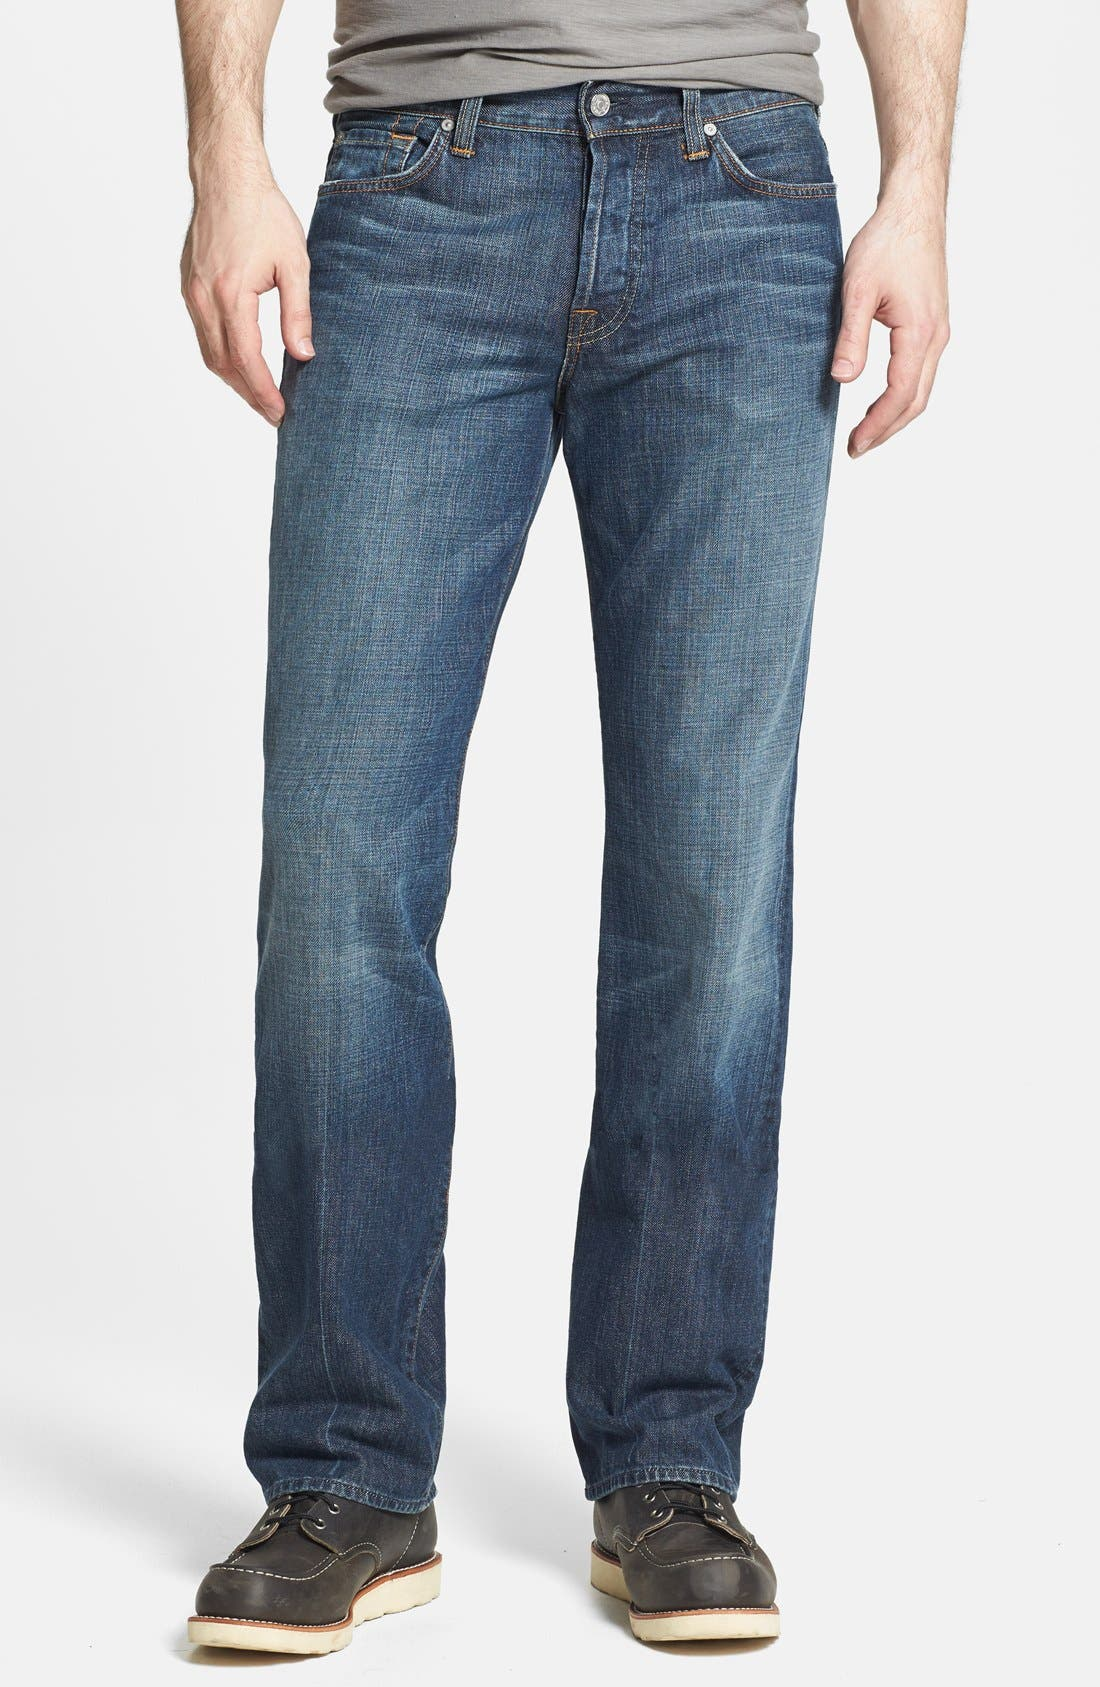 Alternate Image 1 Selected - 7 For All Mankind® 'Standard' Classic Straight Leg Jeans (New York Dark)